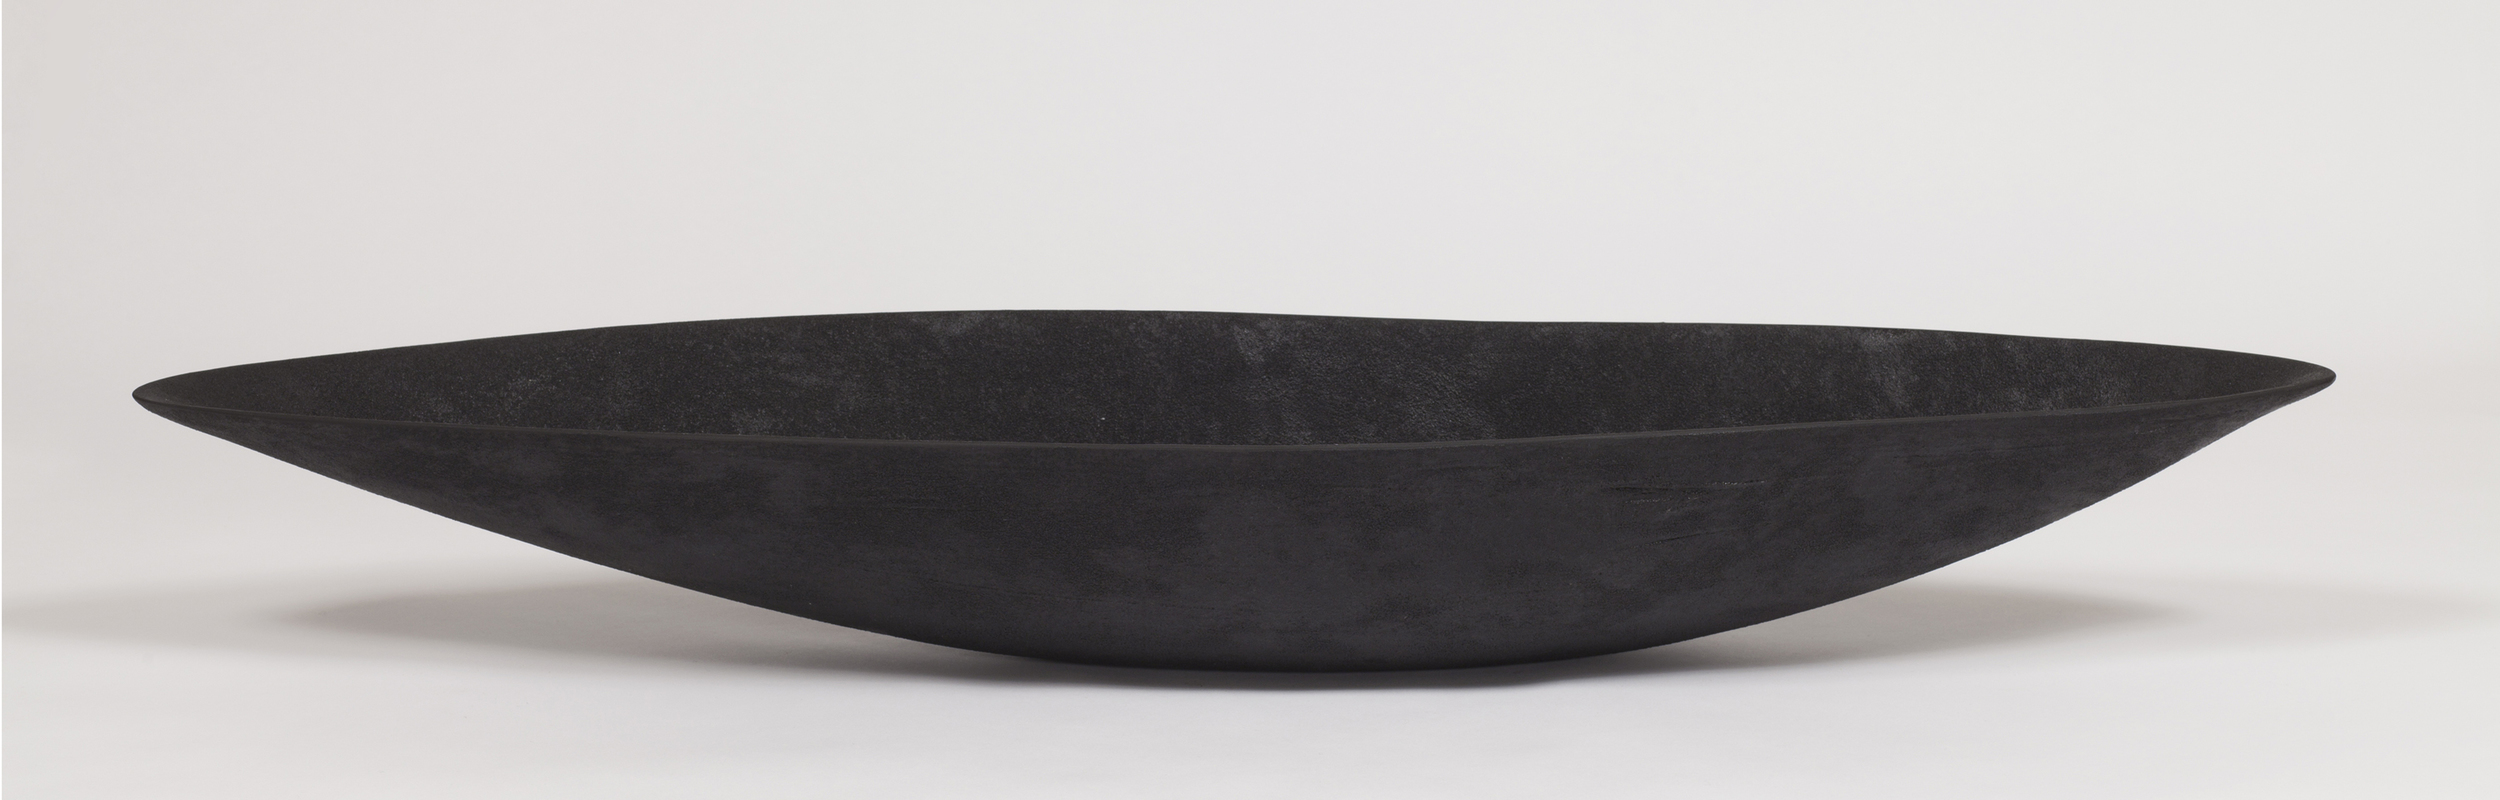 "Black Pod With White  Kathy Erteman ET134 Ceramic 5"" x 37"" x10"""